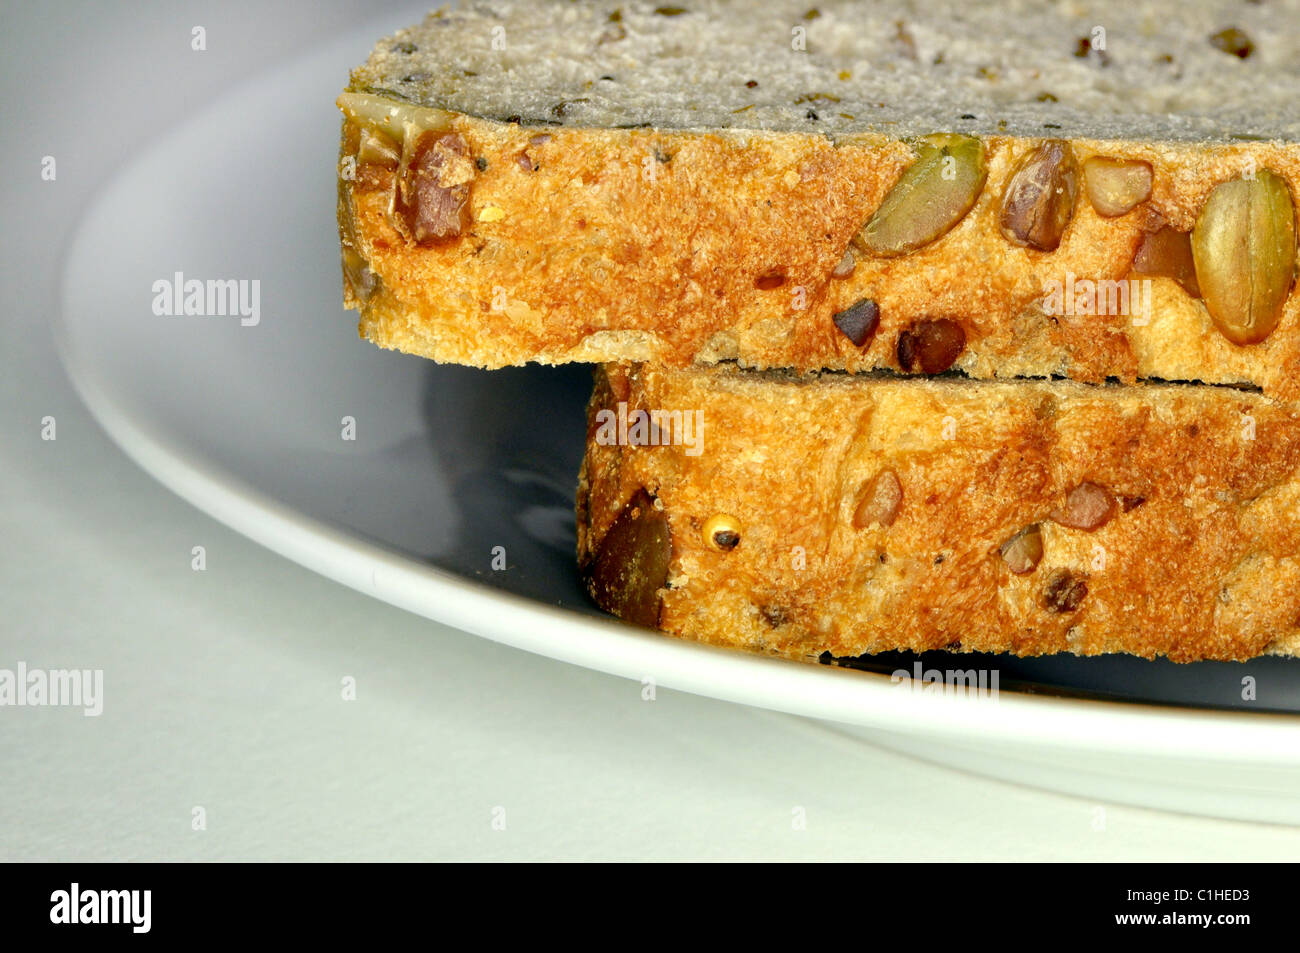 Two Slices Of Wholemeal Bread On A White Plate Stock Photo ...